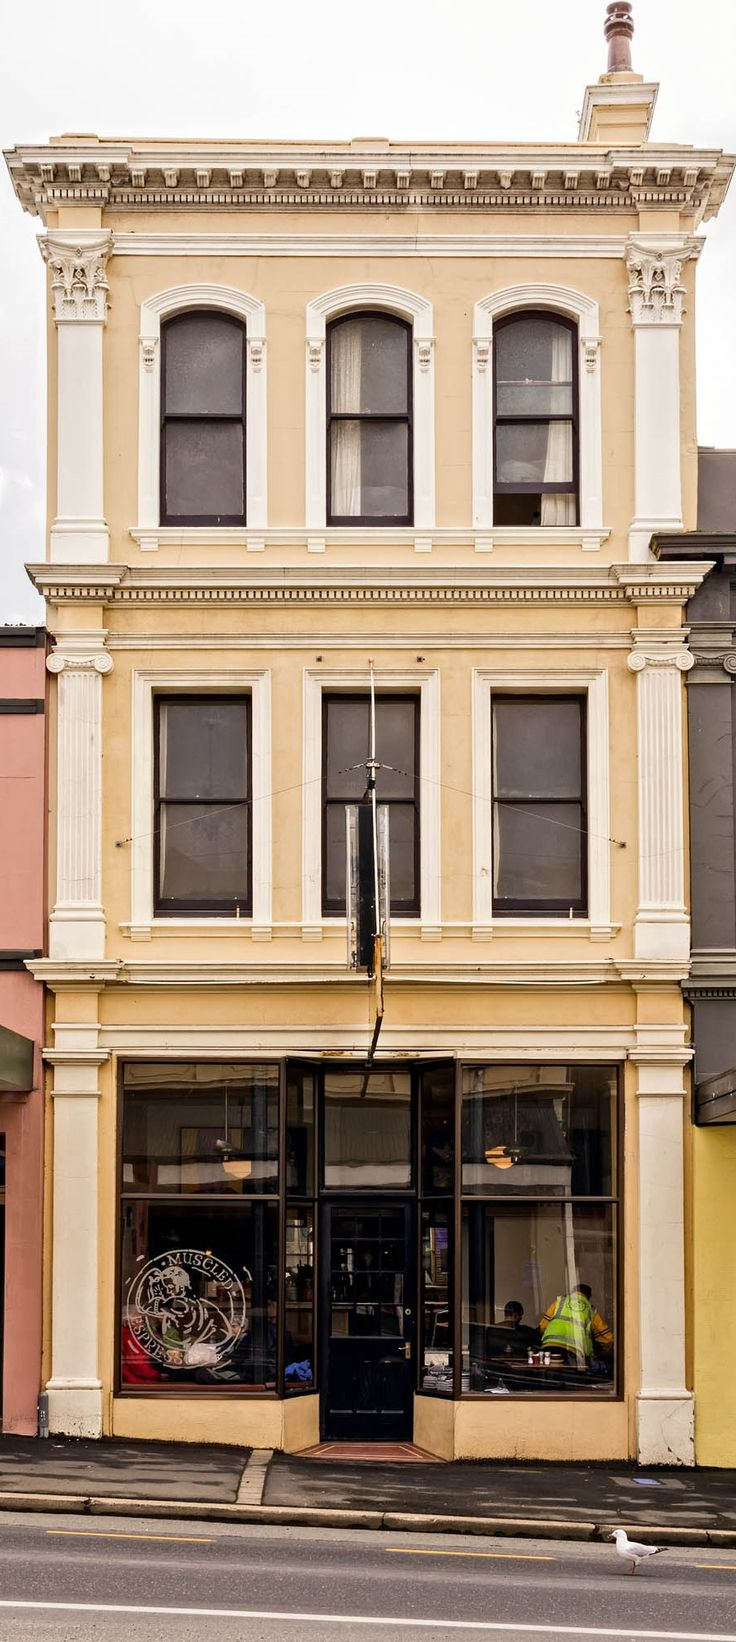 9 best hols images on Pinterest | Auckland, New zealand and Architecture